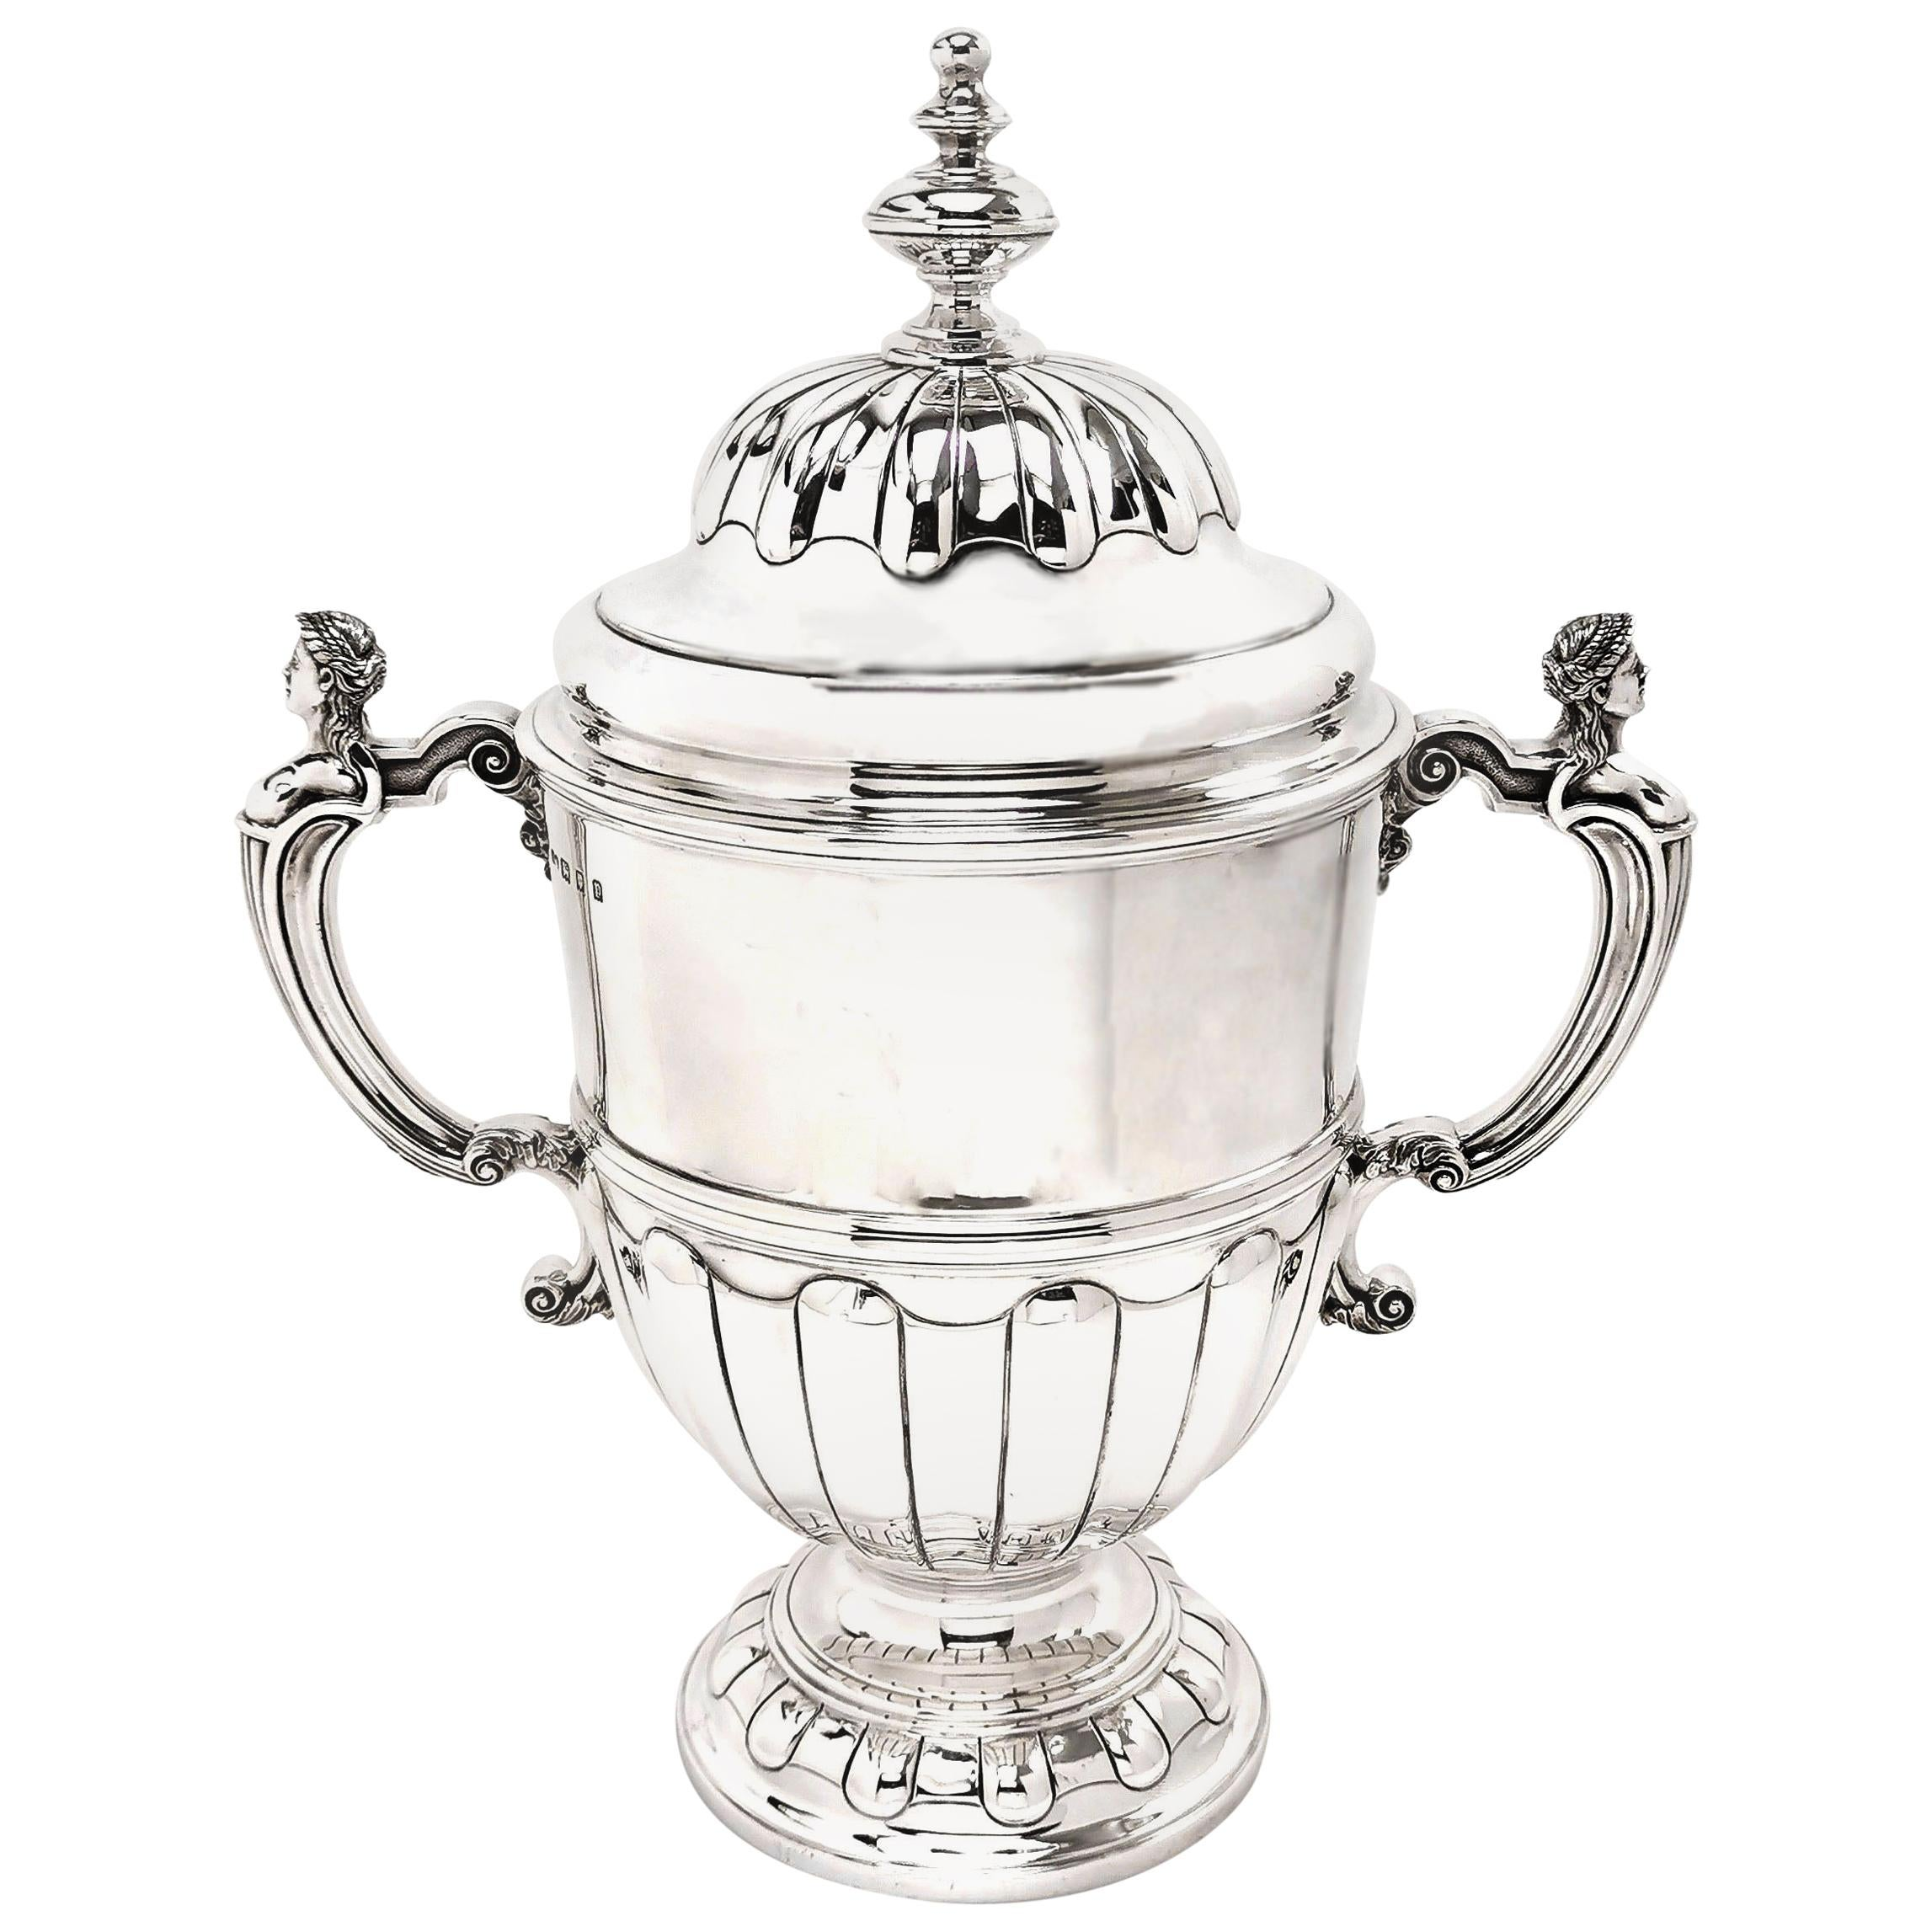 Large Sterling Silver Trophy Lidded Cup and Cover 1930 Champagne Cooler